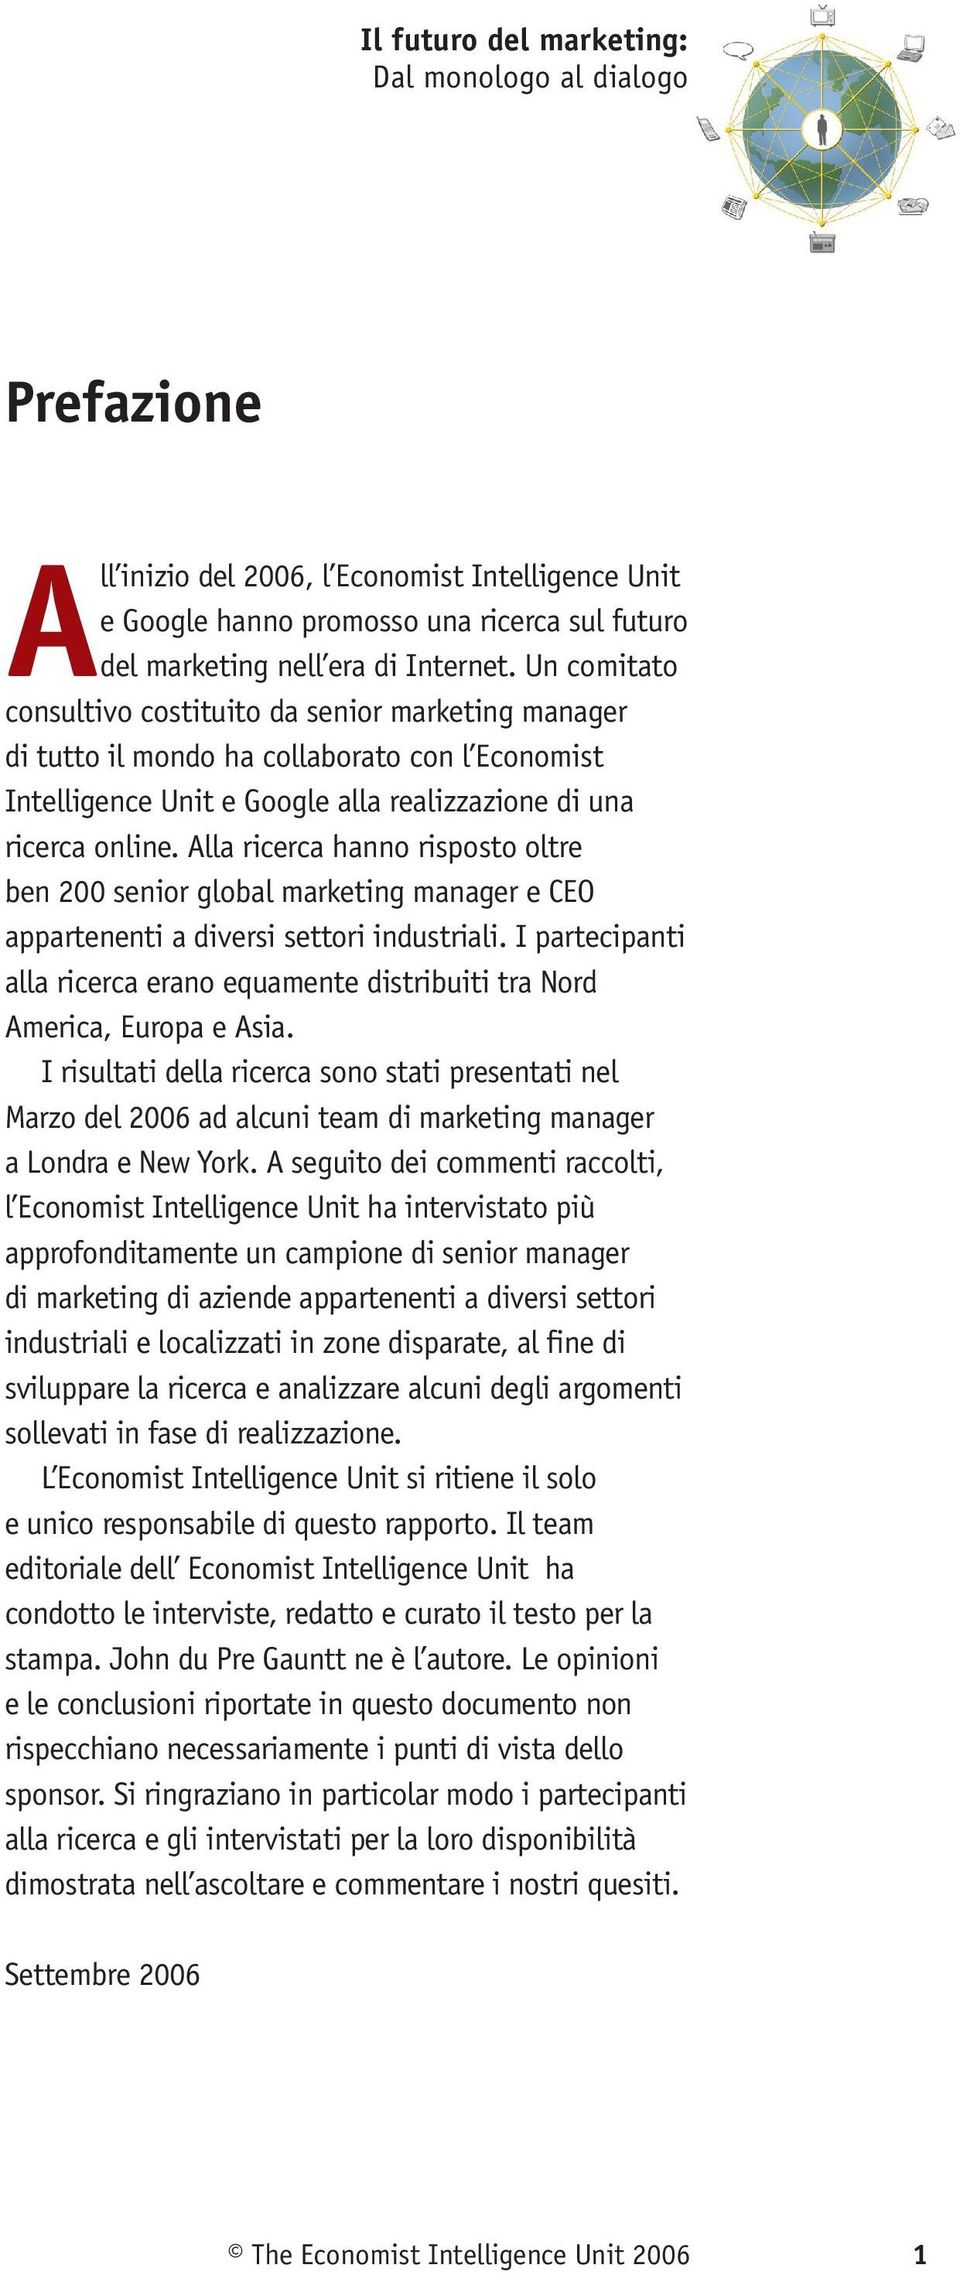 Alla ricerca hanno risposto oltre ben 00 senior global marketing manager e CEO appartenenti a diversi settori industriali.